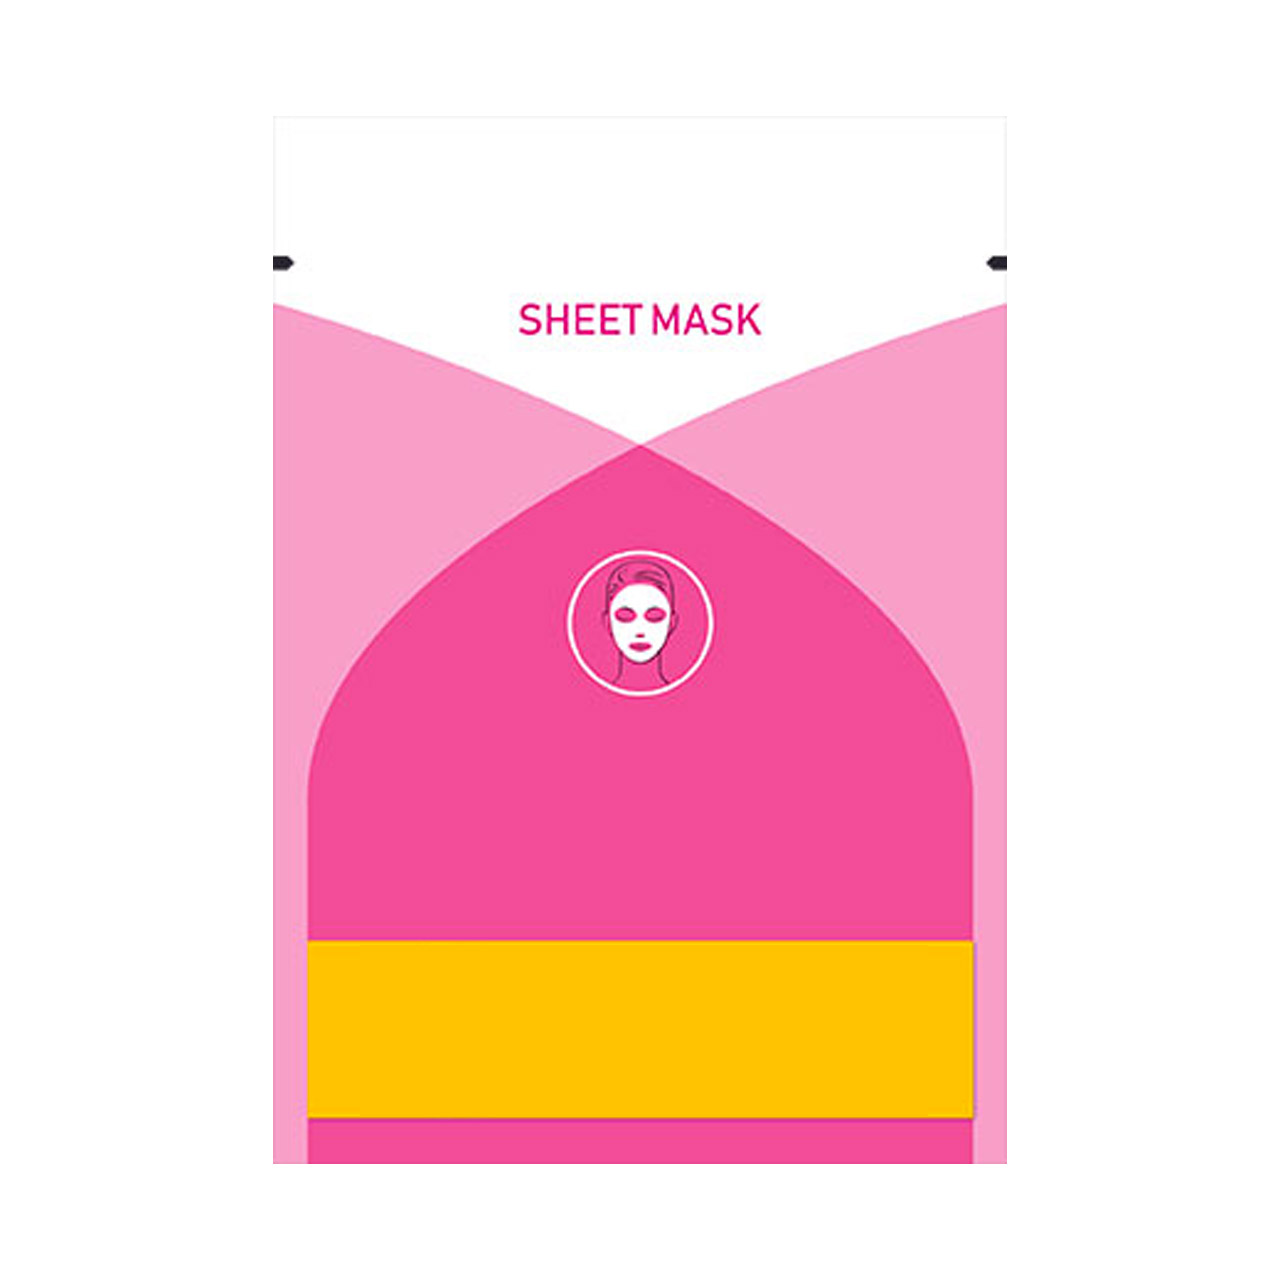 Mask label